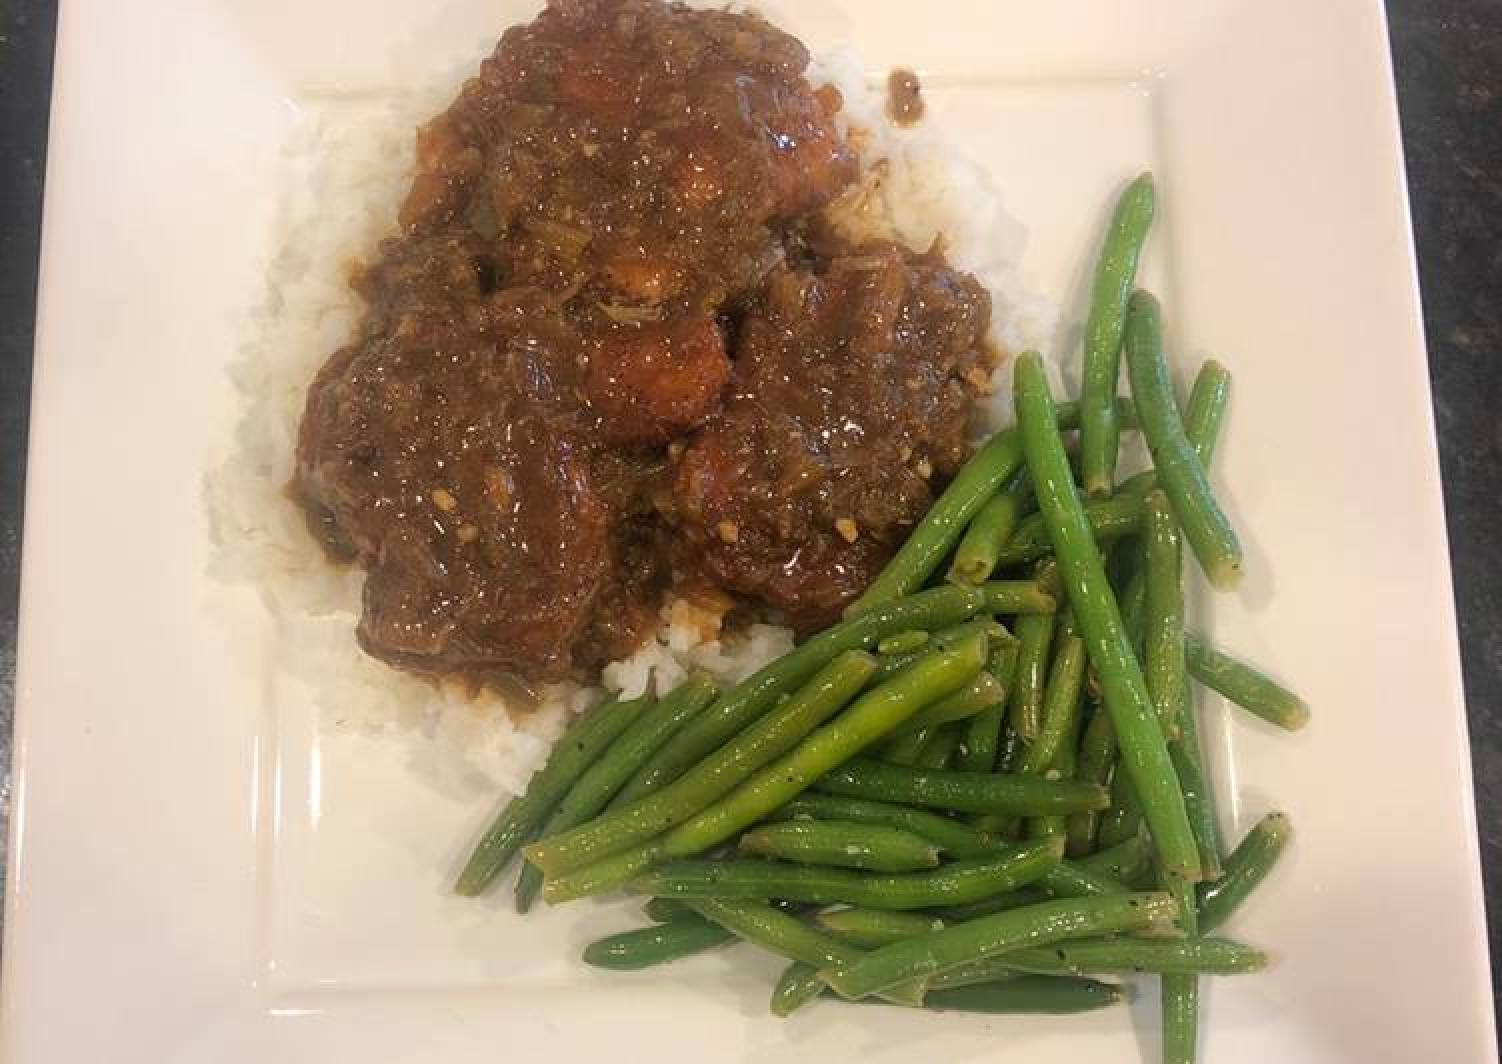 Smothered chicken or pork chops (shown with pork chops)